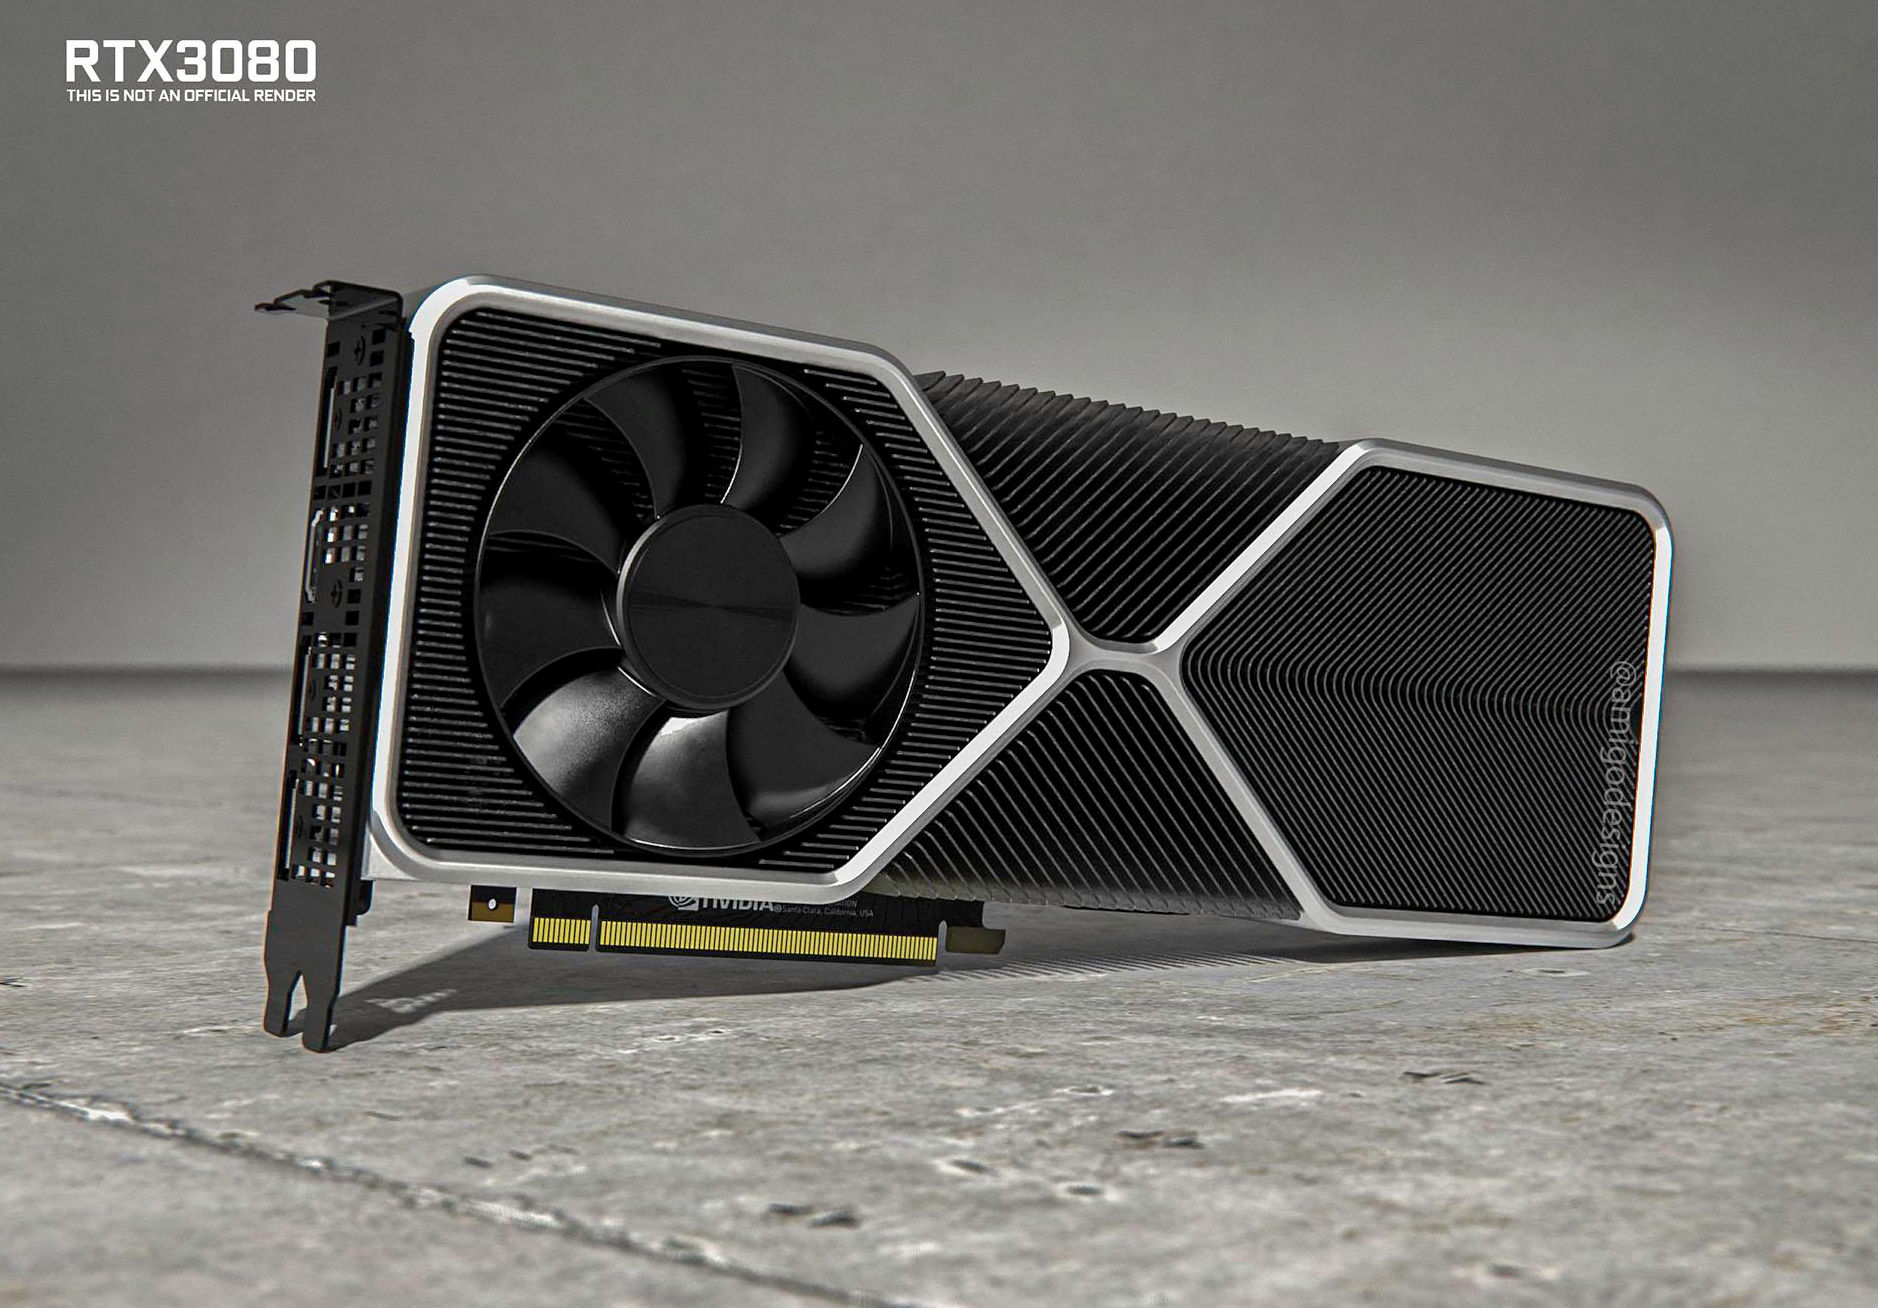 Nvidia Geforce Rtx 3080 Pictures Leak And Rtx 3090 Rumors Start Legit Reviews It still remains a great service, particularly as it lets you play your existing games without pulling you into a whole separate. nvidia geforce rtx 3080 pictures leak